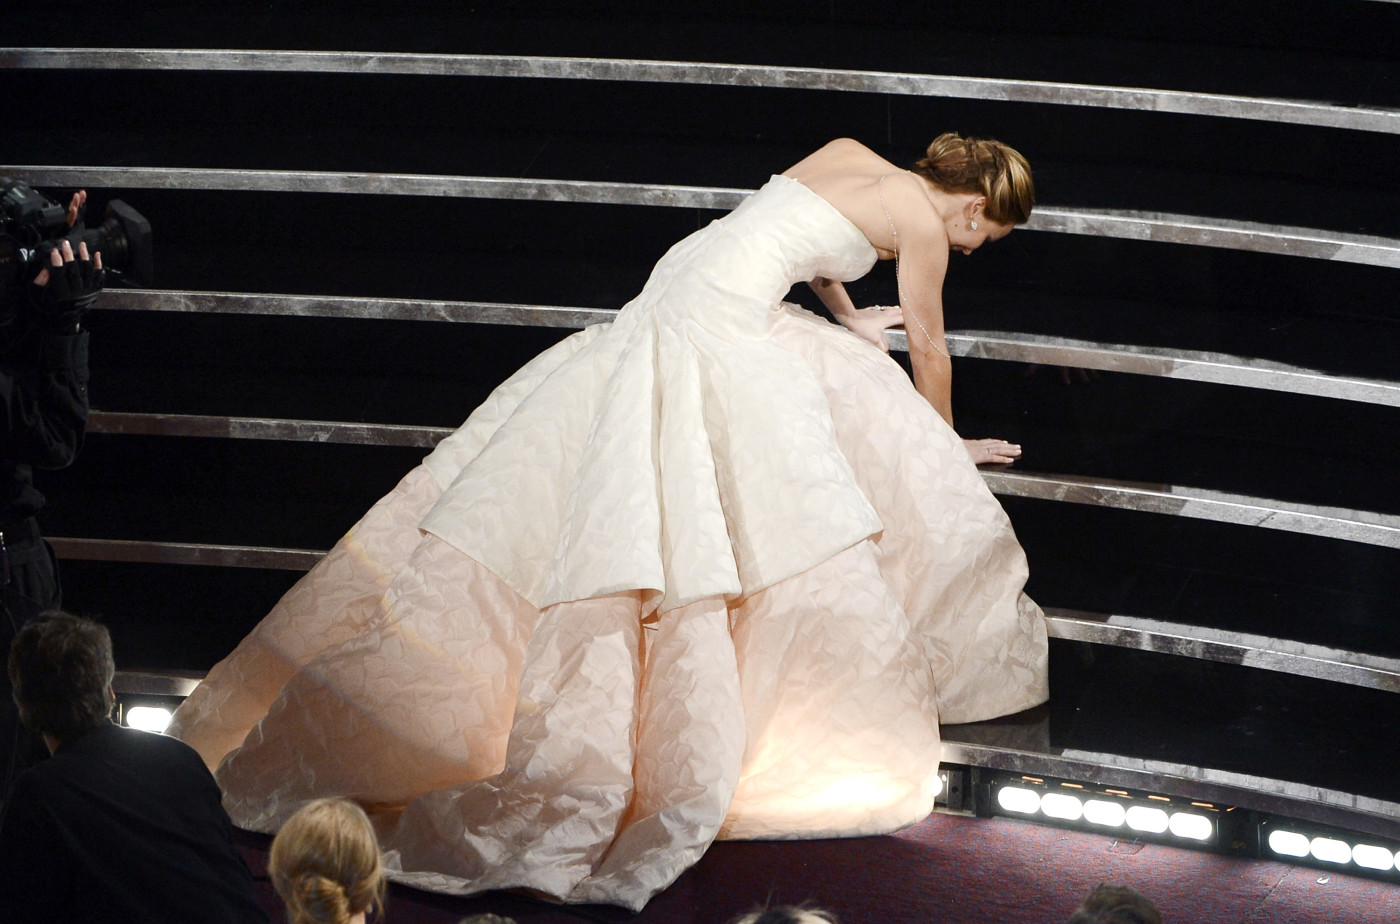 Jennifer Lawrence falls at the Oscars after winning Best Actress for 'Silver Linings Playbook'